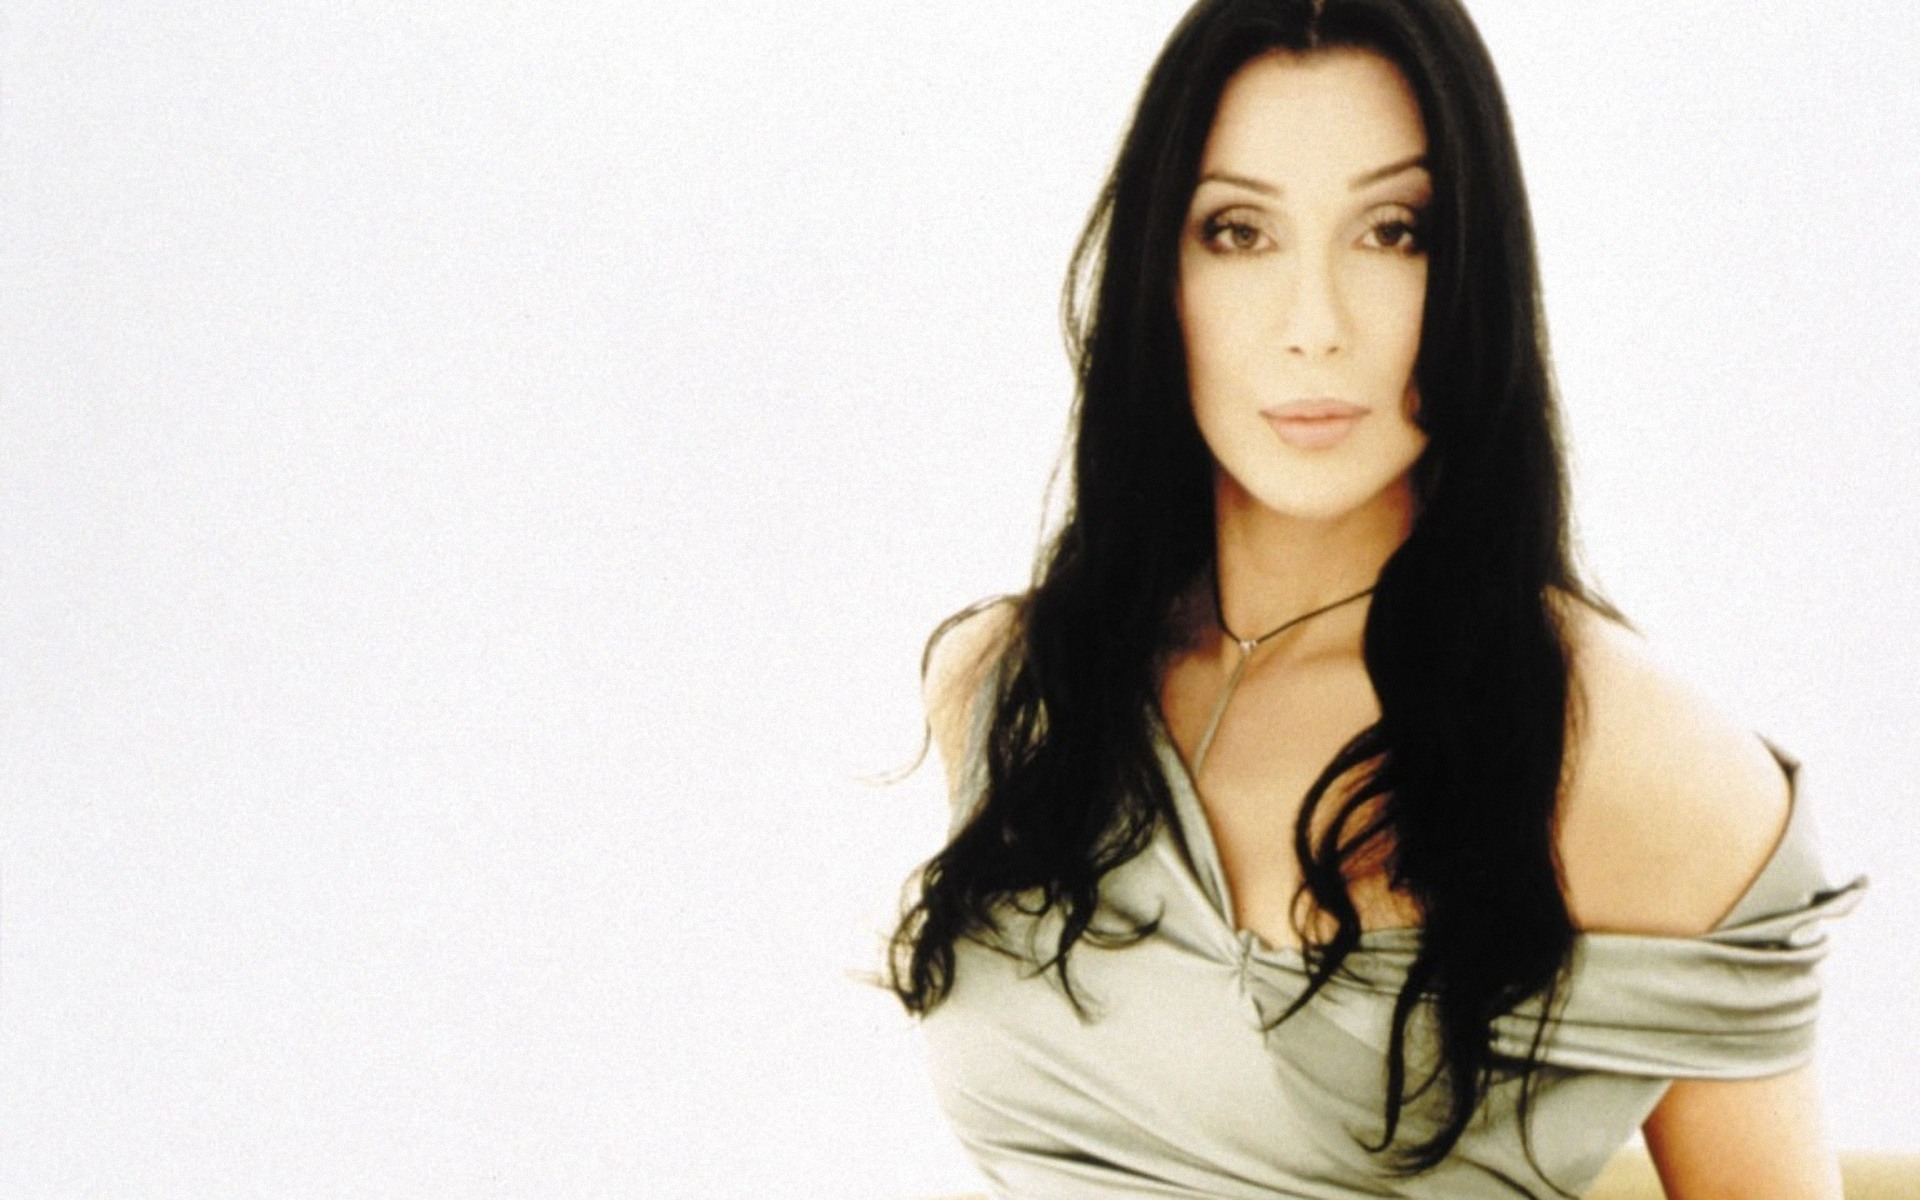 Cher wallpaper 1920x1200 Wallpapers 1920x1200 Wallpapers Pictures 1920x1200